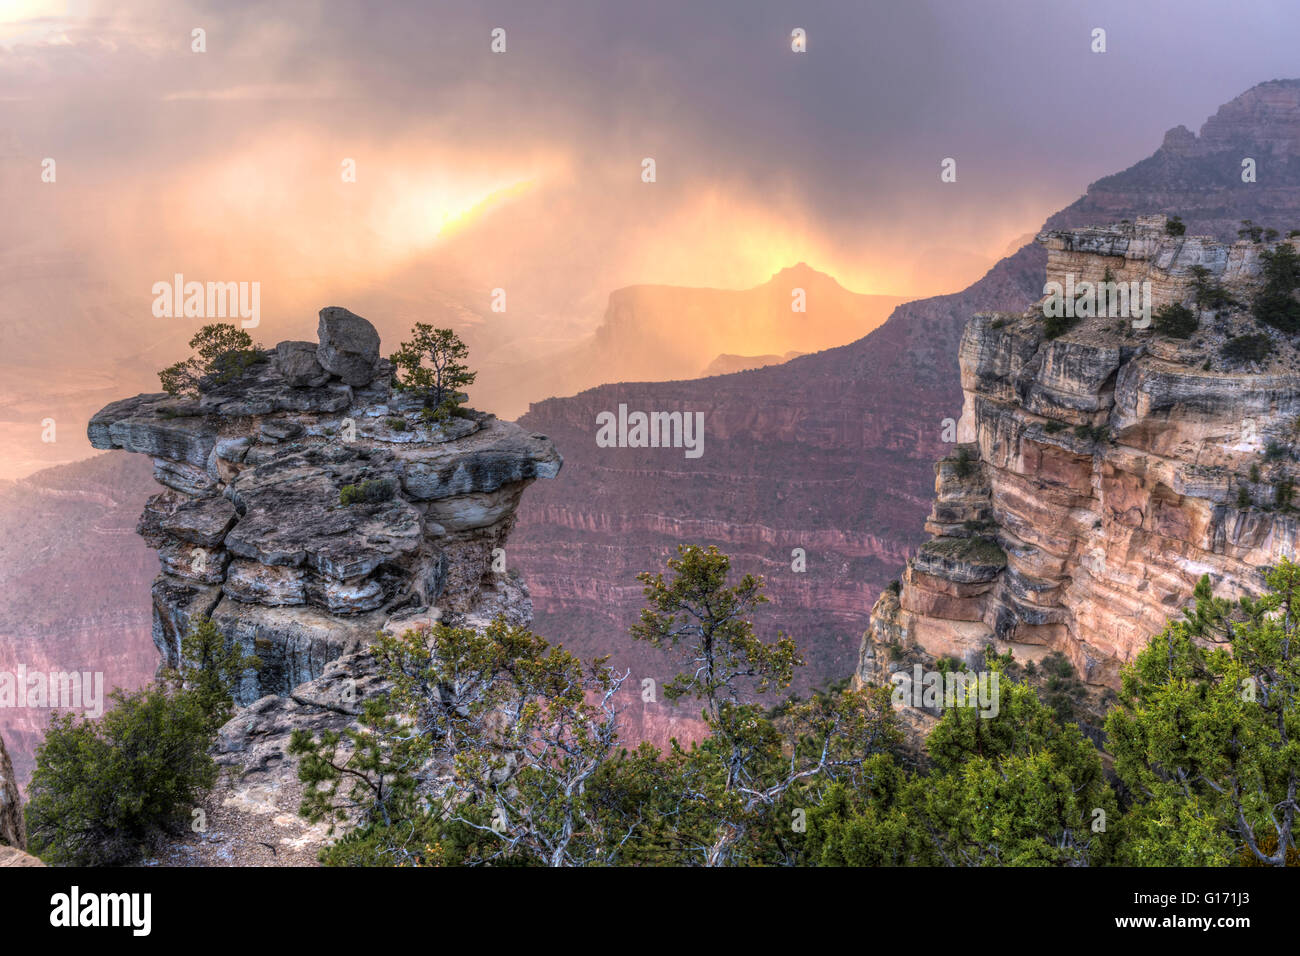 The sun lights up the low clouds and swirling snow seen from Mather Point in Grand Canyon National Park, Arizona. - Stock Image